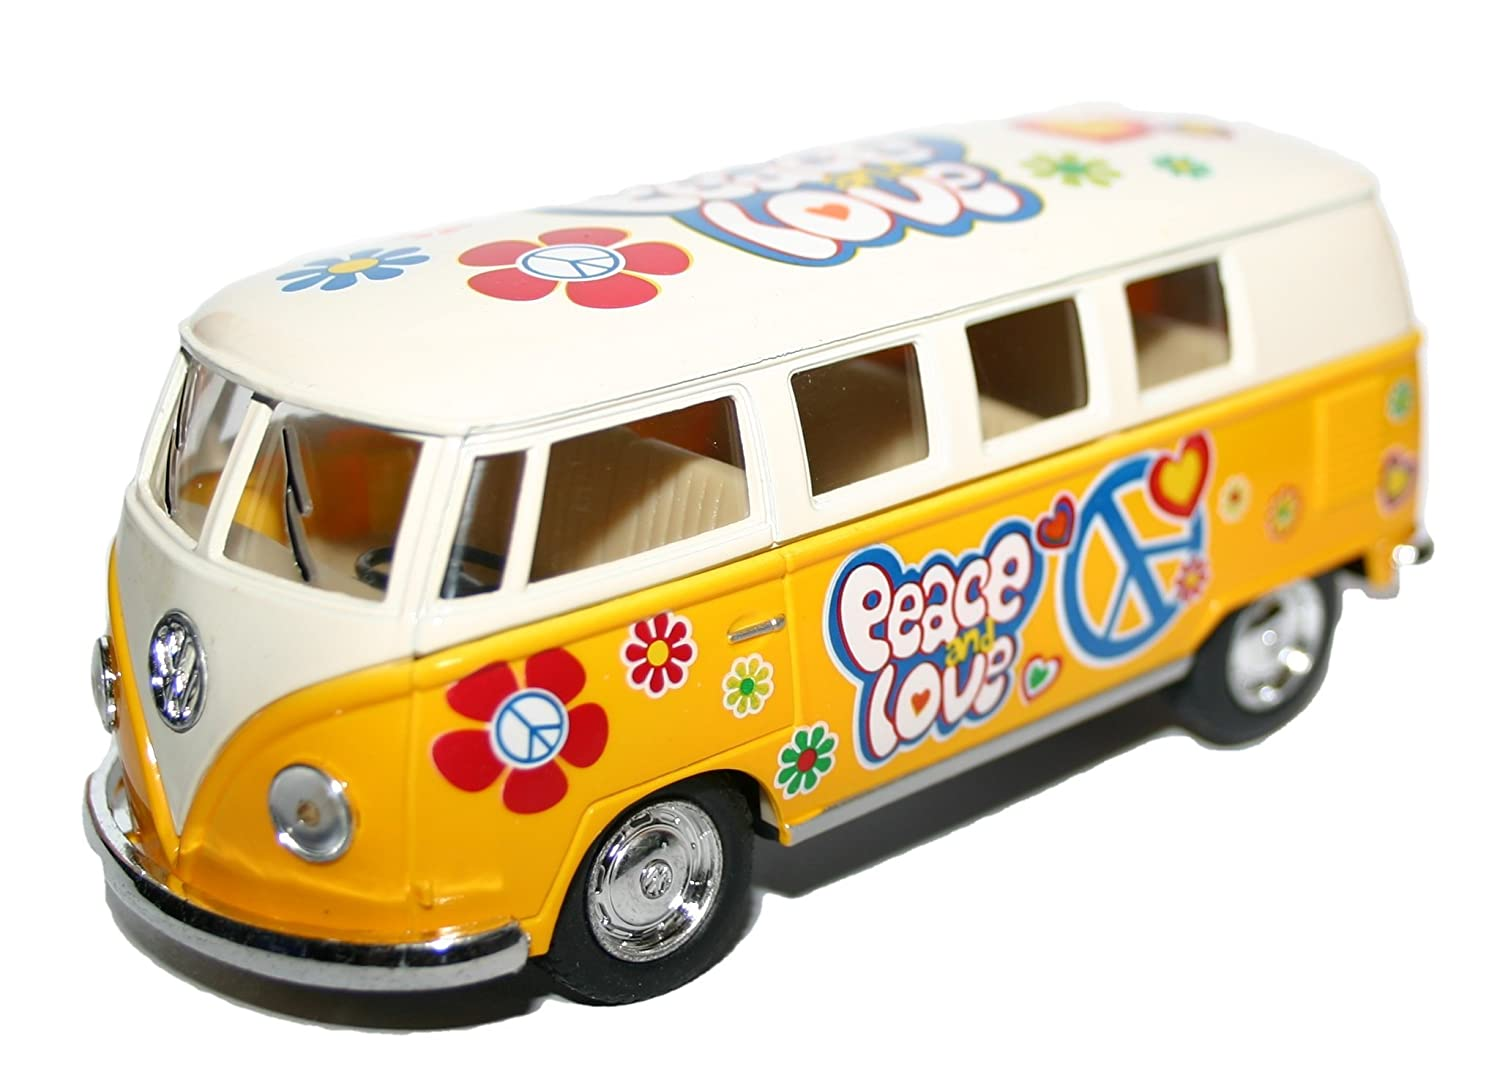 Latest for 2015 Xmas Christmas Stocking Filler Top Up Gift Idea Toys & Games Age 3 +, Girl Child Girls Children - Collect Them - Yellow Flower Power VW T1 Bus 1963 Model Car Vehicle with Pull Back - One Supplied Kinsmart